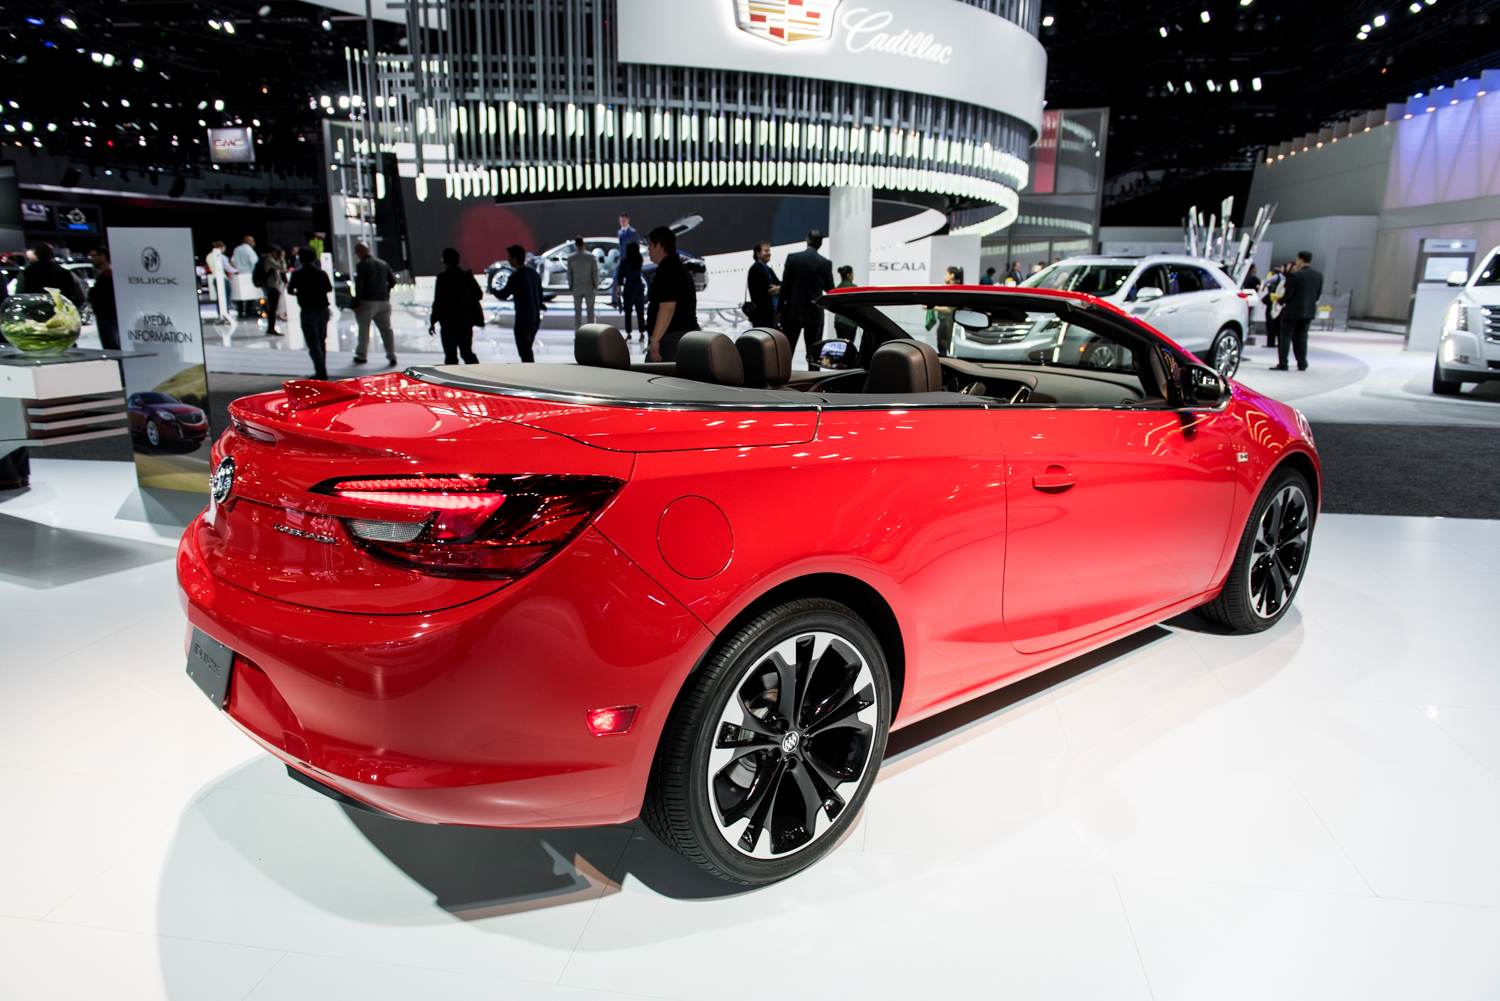 Buick Cascada Sales Numbers February 2018 | Gm Authority New 2022 Buick Cascada Used, 0-60, Colors